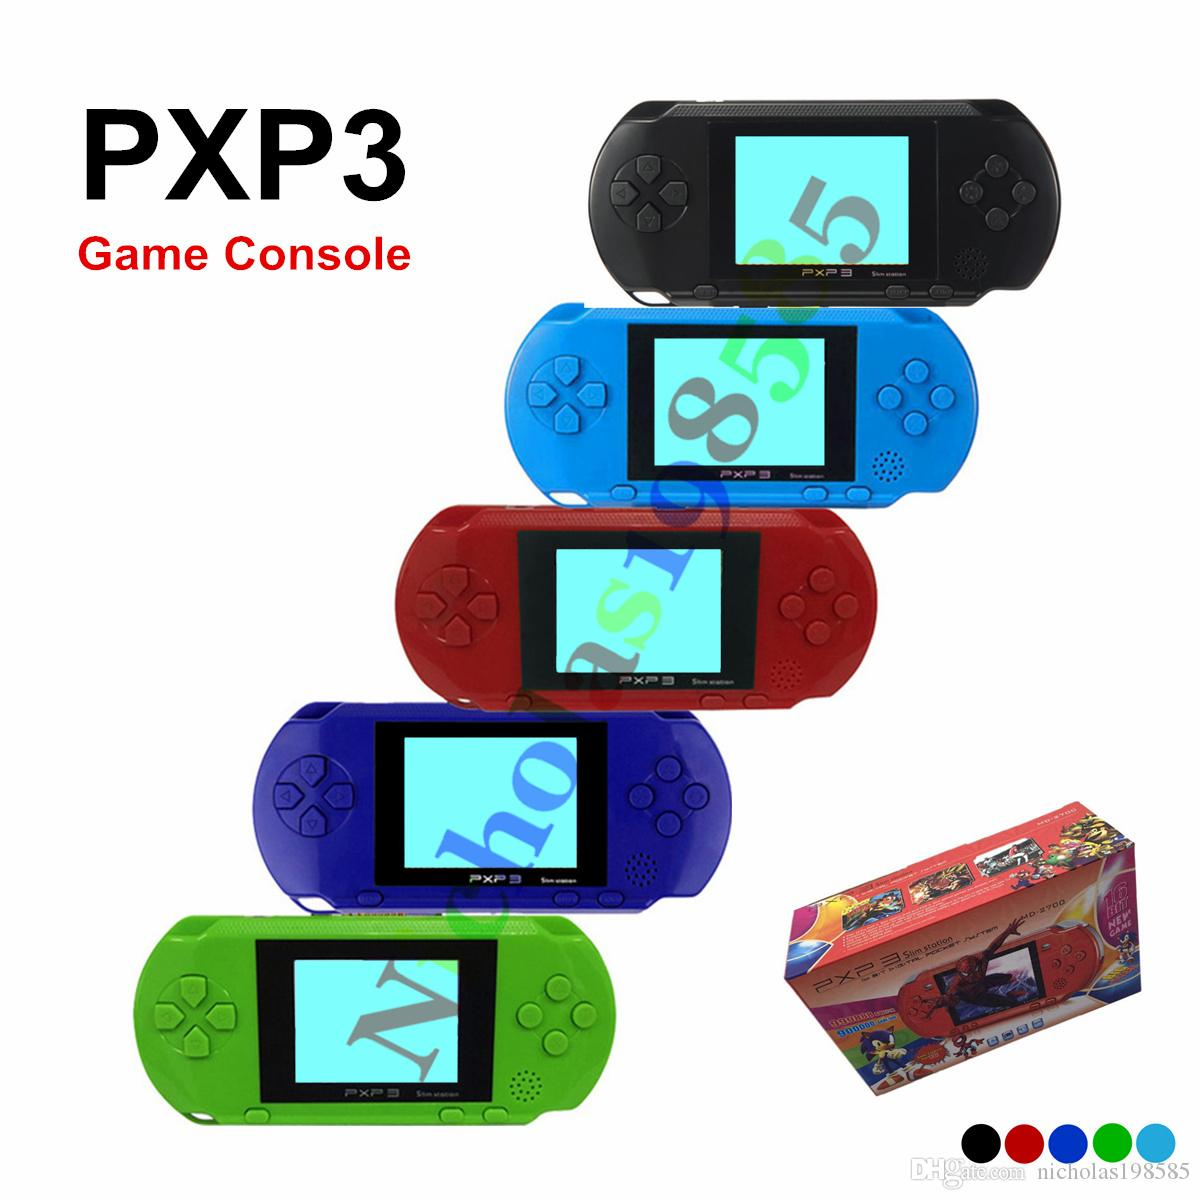 New Arrival Game Player PXP3 (16 Bit) 2.7 Inch LCD Screen Handheld Video Game Player Consoles Mini Portable Game Box Also Sale PVP PXP PAP